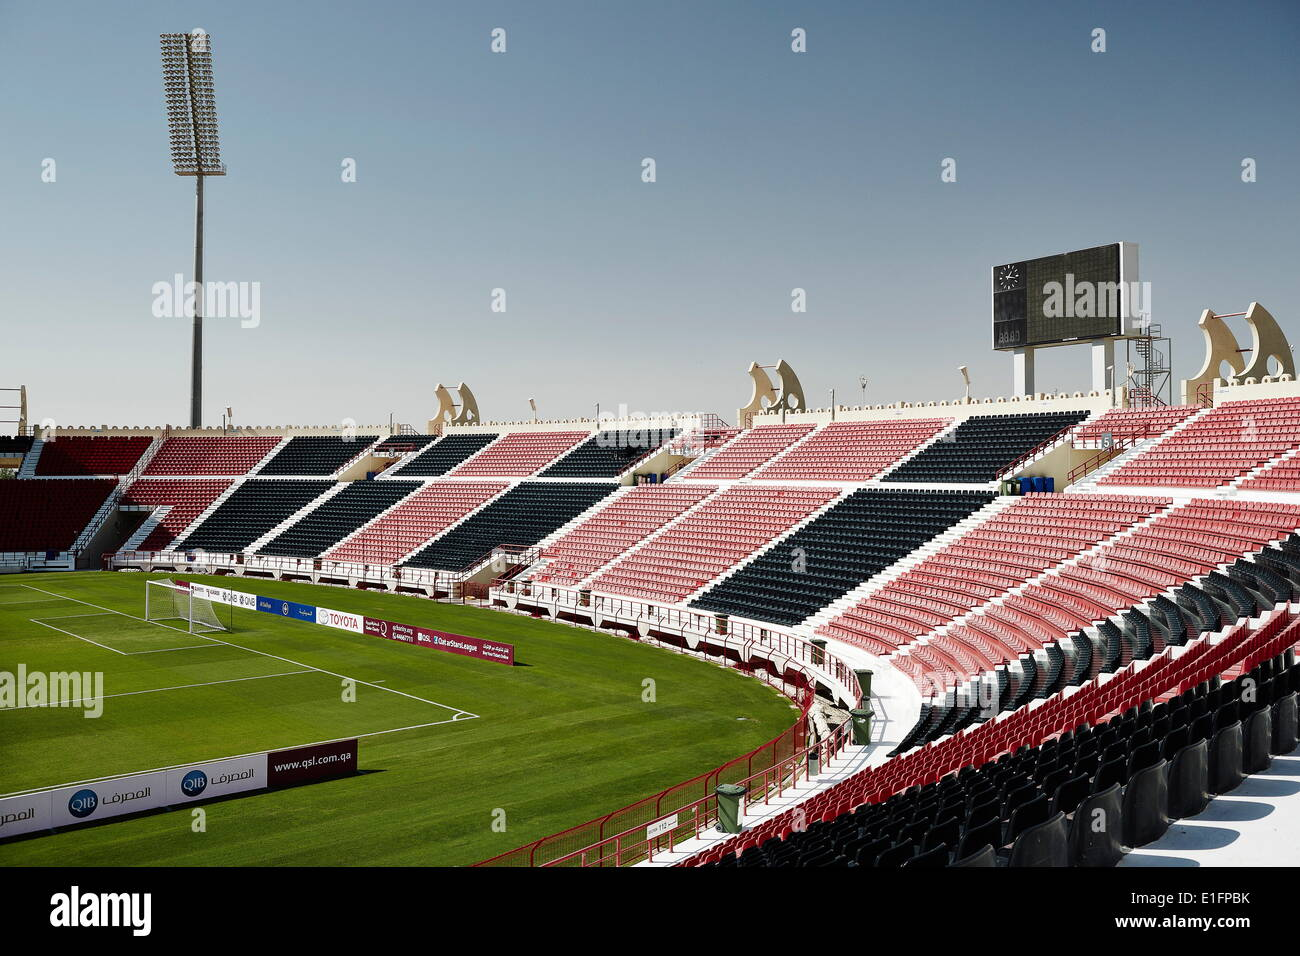 The Al-Rayyan stadium in Doha, one of the proposed stadiums for the 2022 World Cup, Doha, Qatar, Middle East Stock Photo